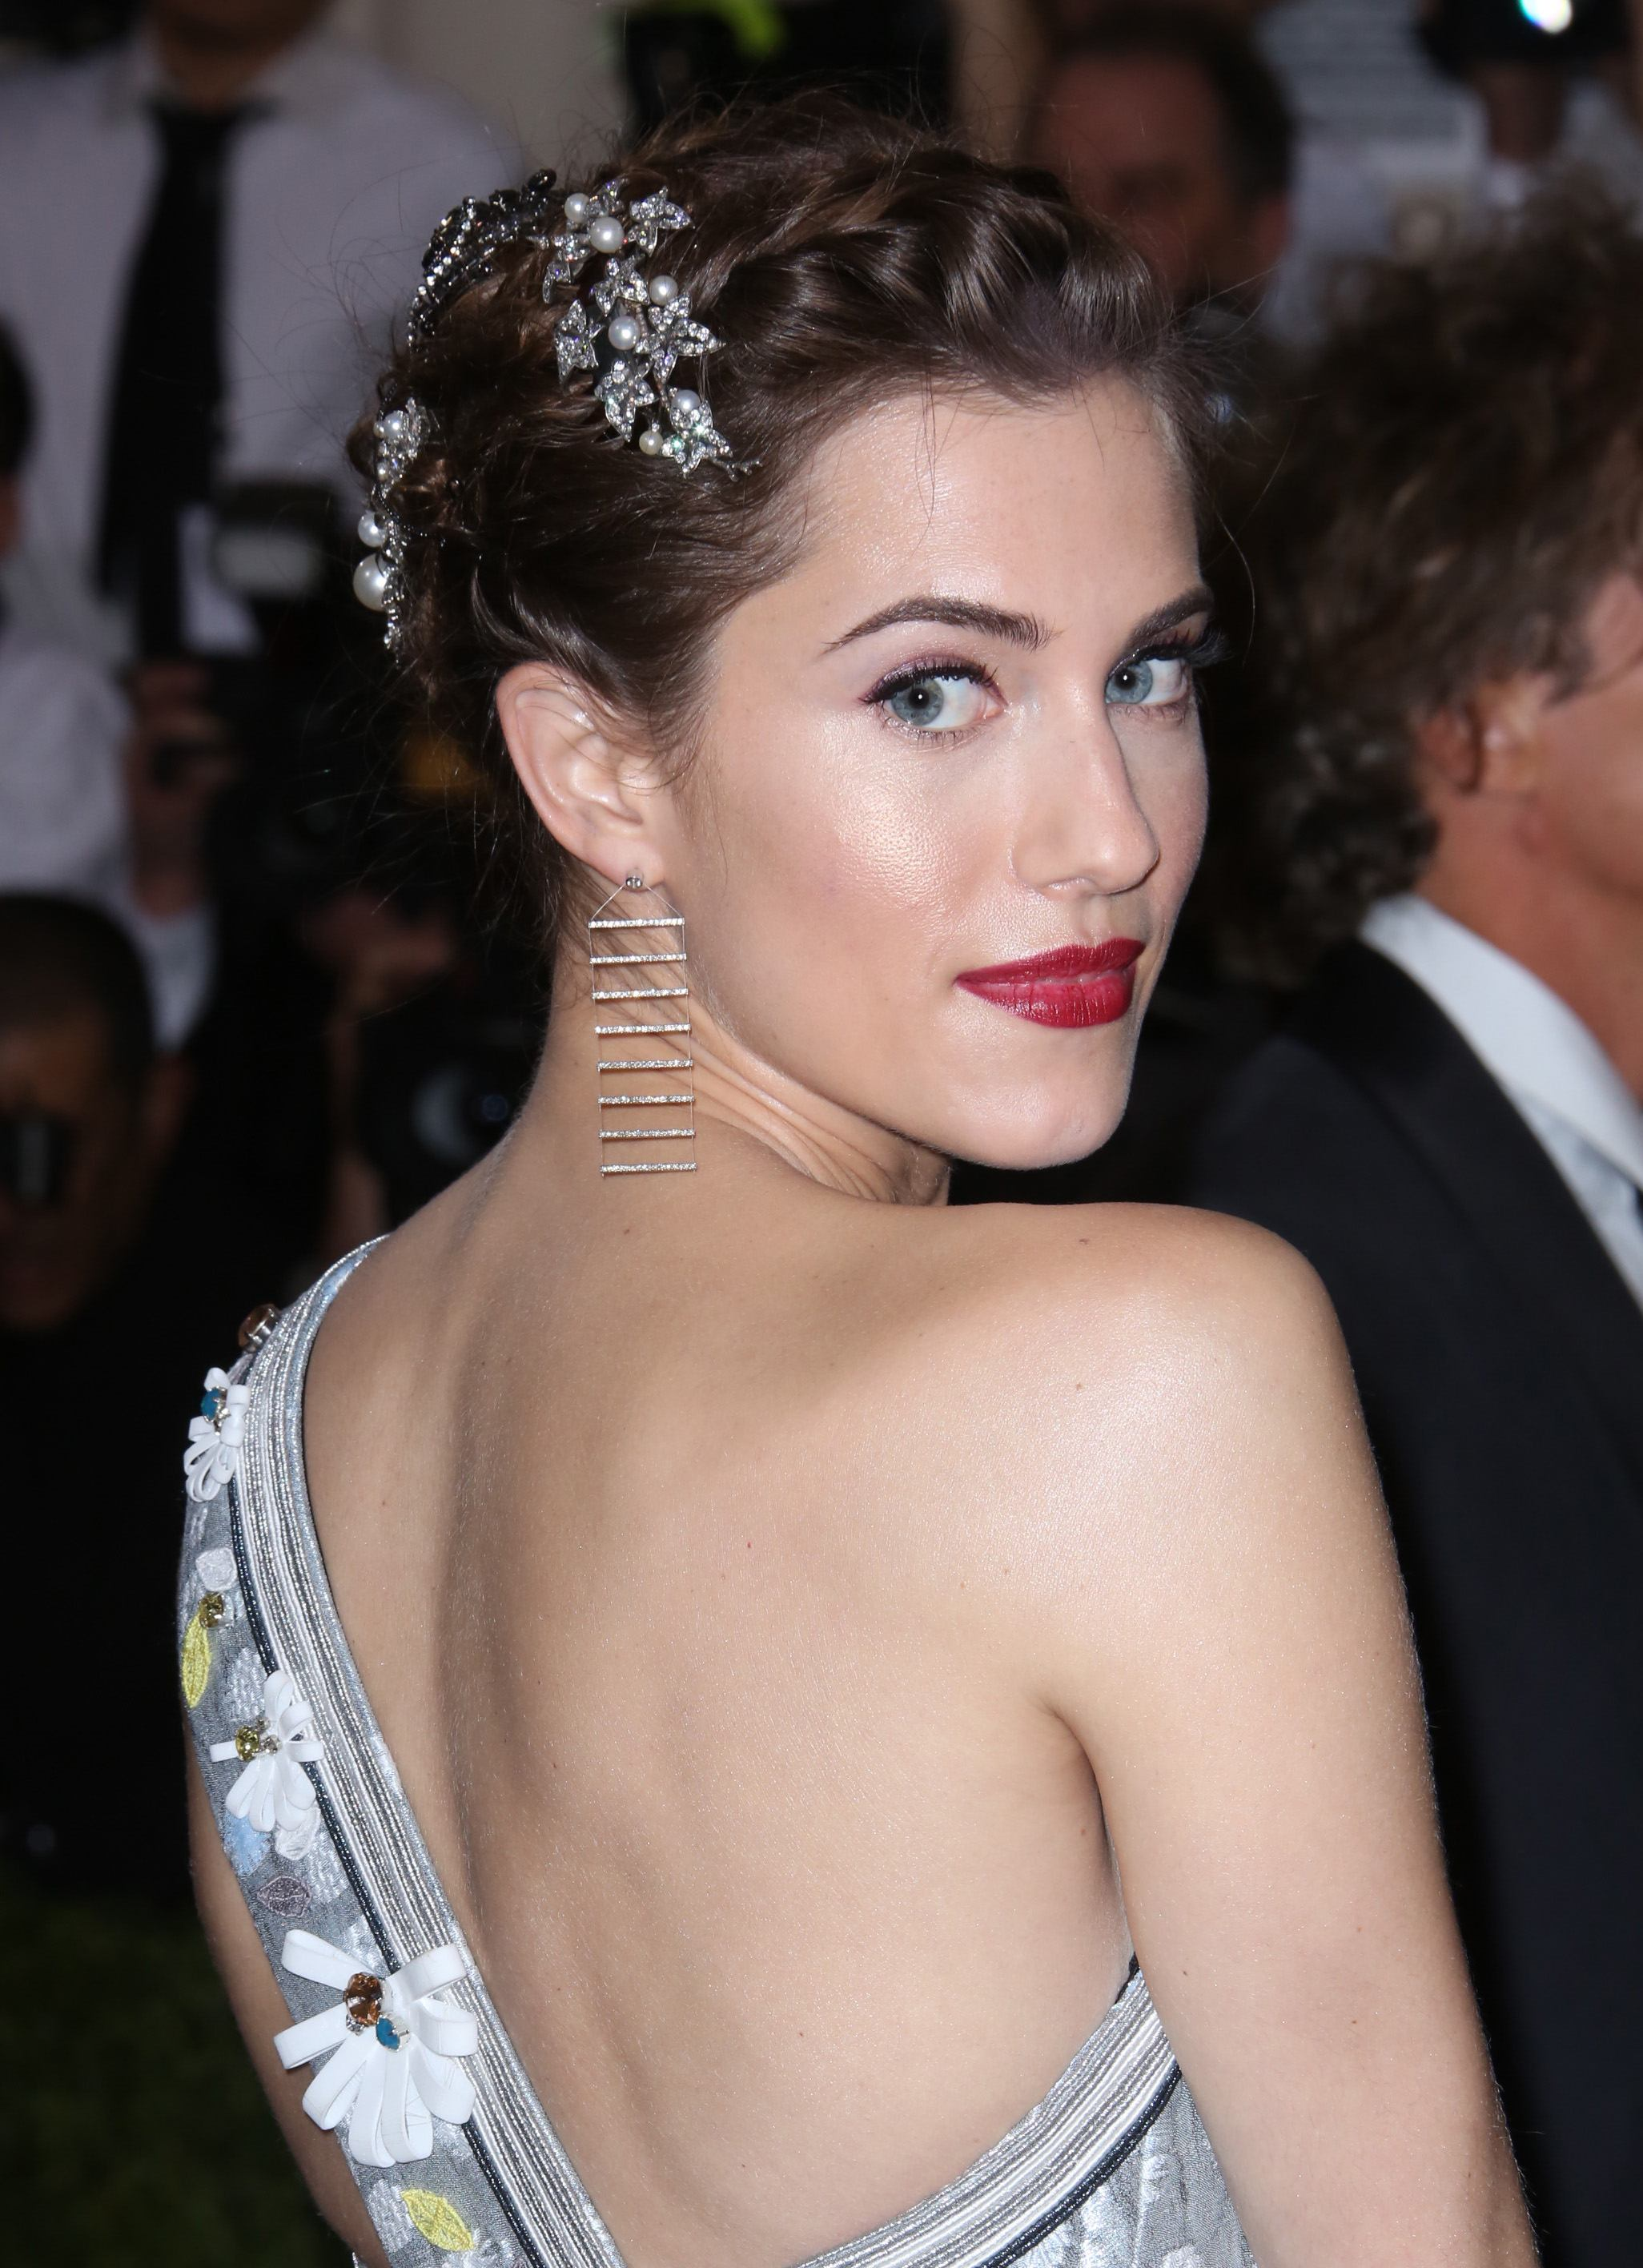 hair accessories 2016: All Things Hair - IMAGE - celebrity hairstyles Allison Williams updo